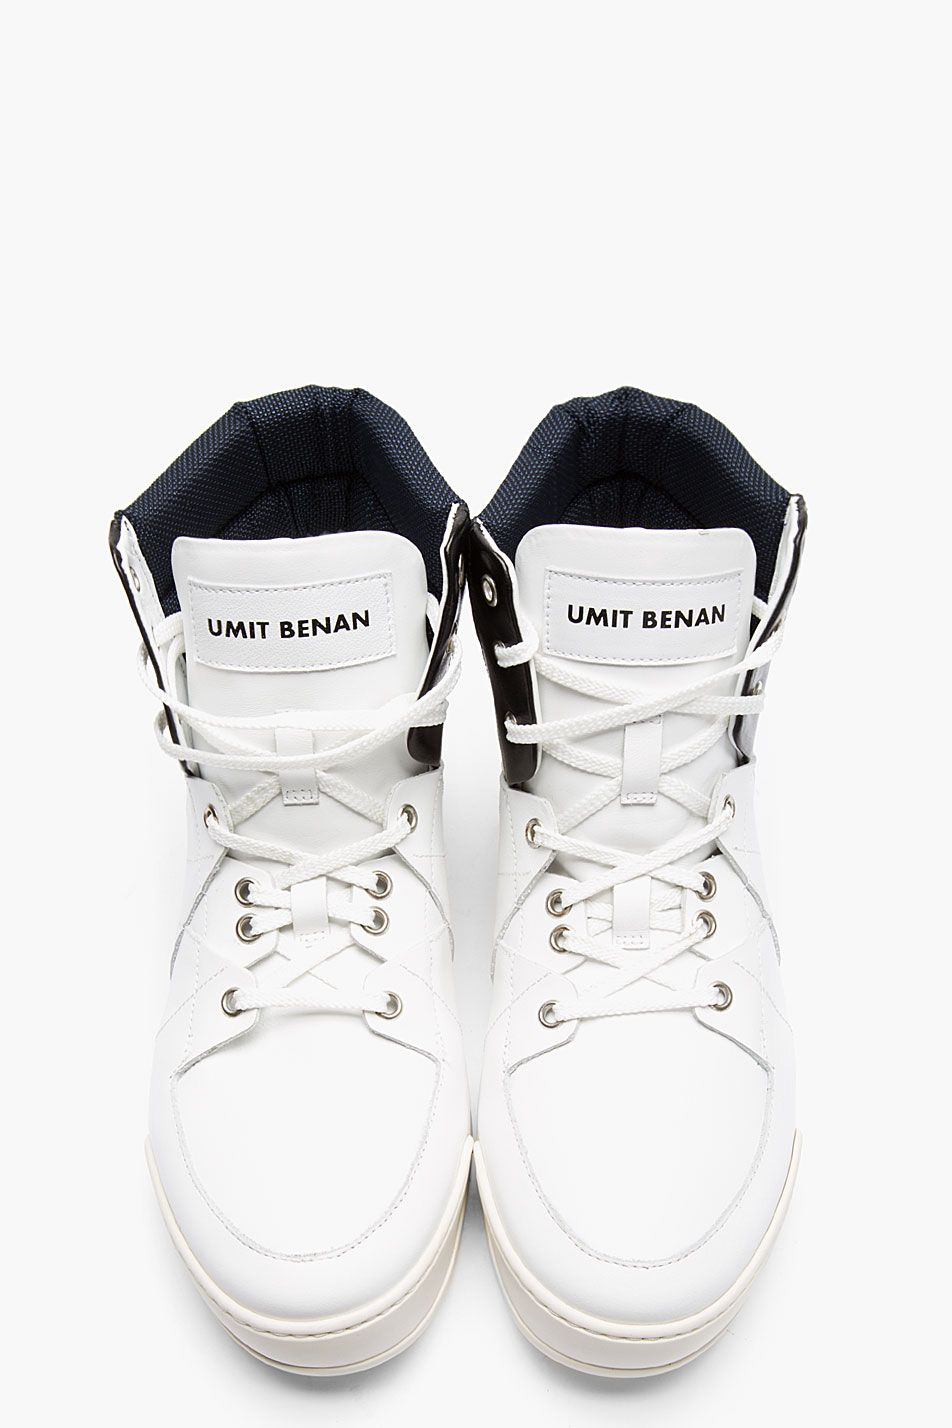 SneakersMy Benan Umit High Sneaker White Leather Tricolor Top 0nkXOPw8